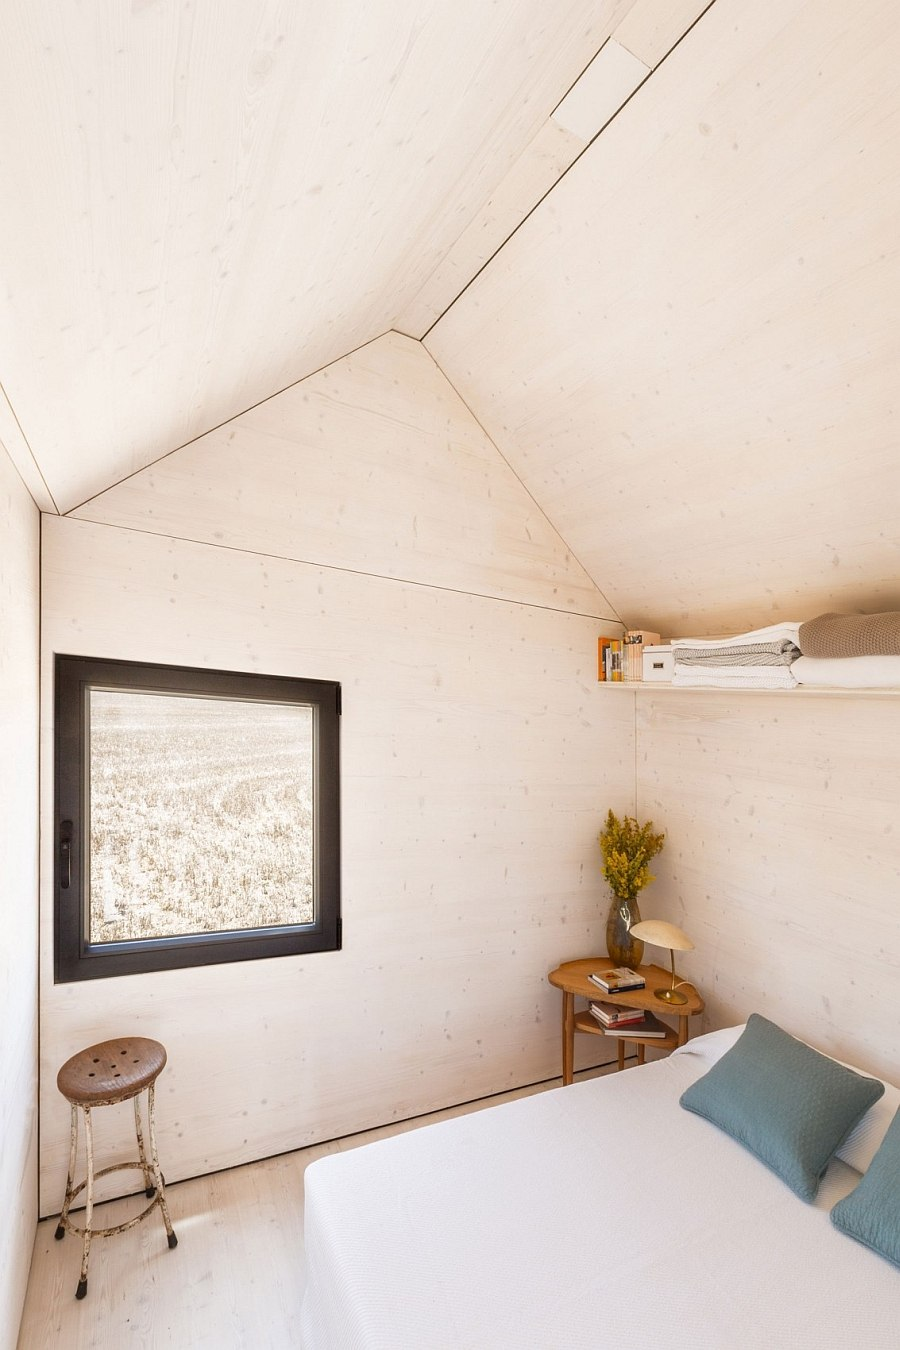 Tiny bedroom of the transportable micro home